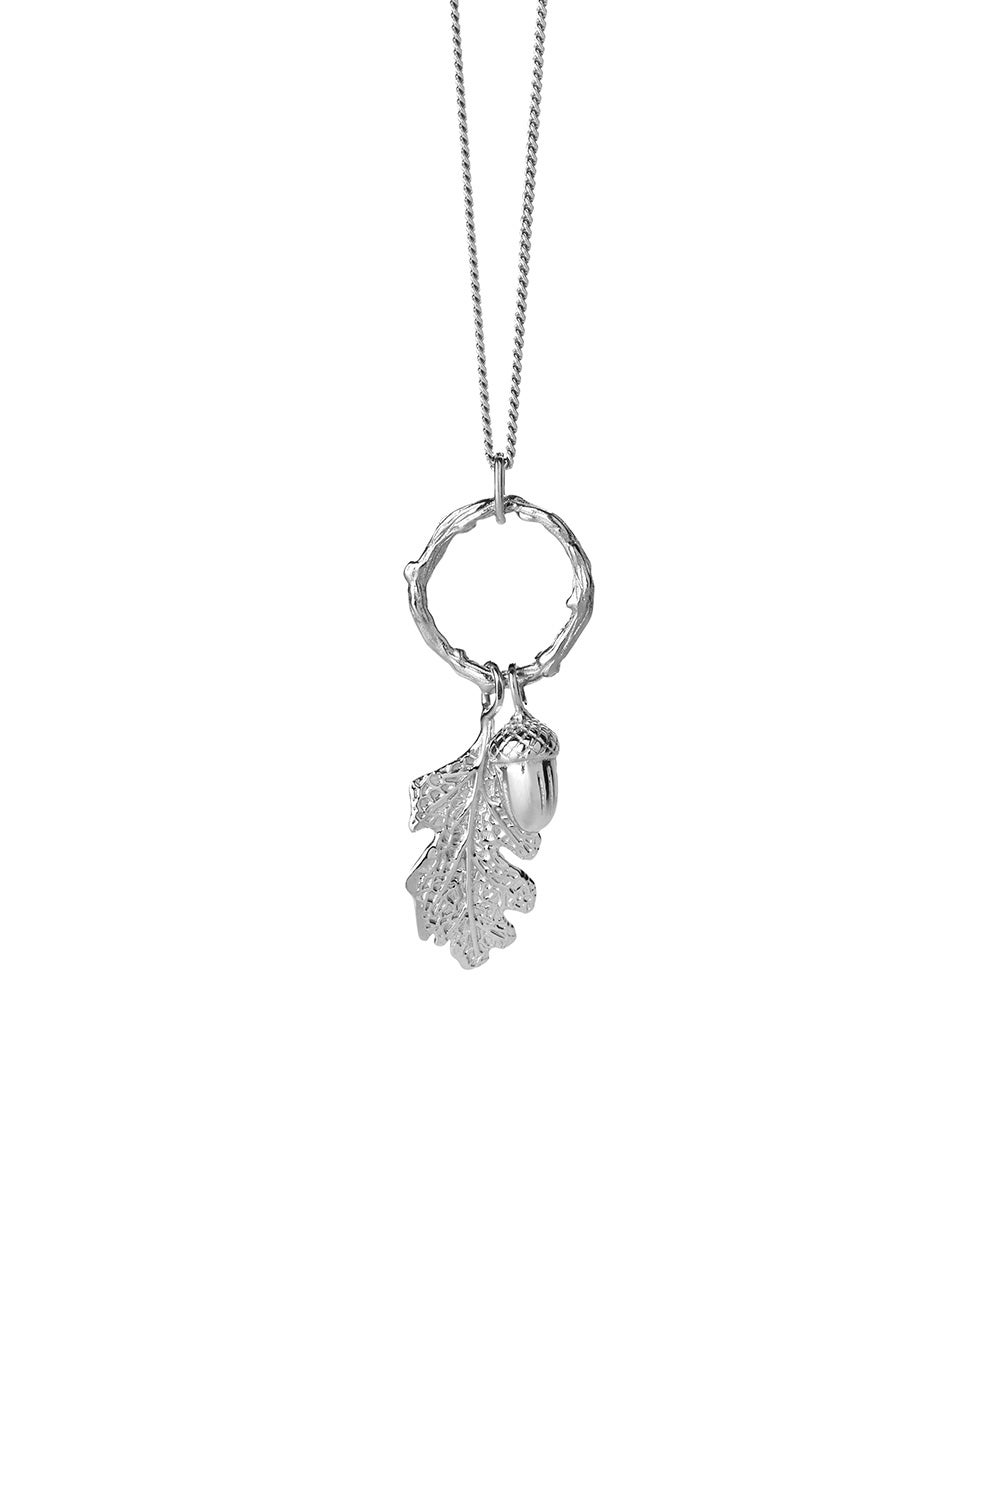 Acorn and Leaf Loop Necklace Silver